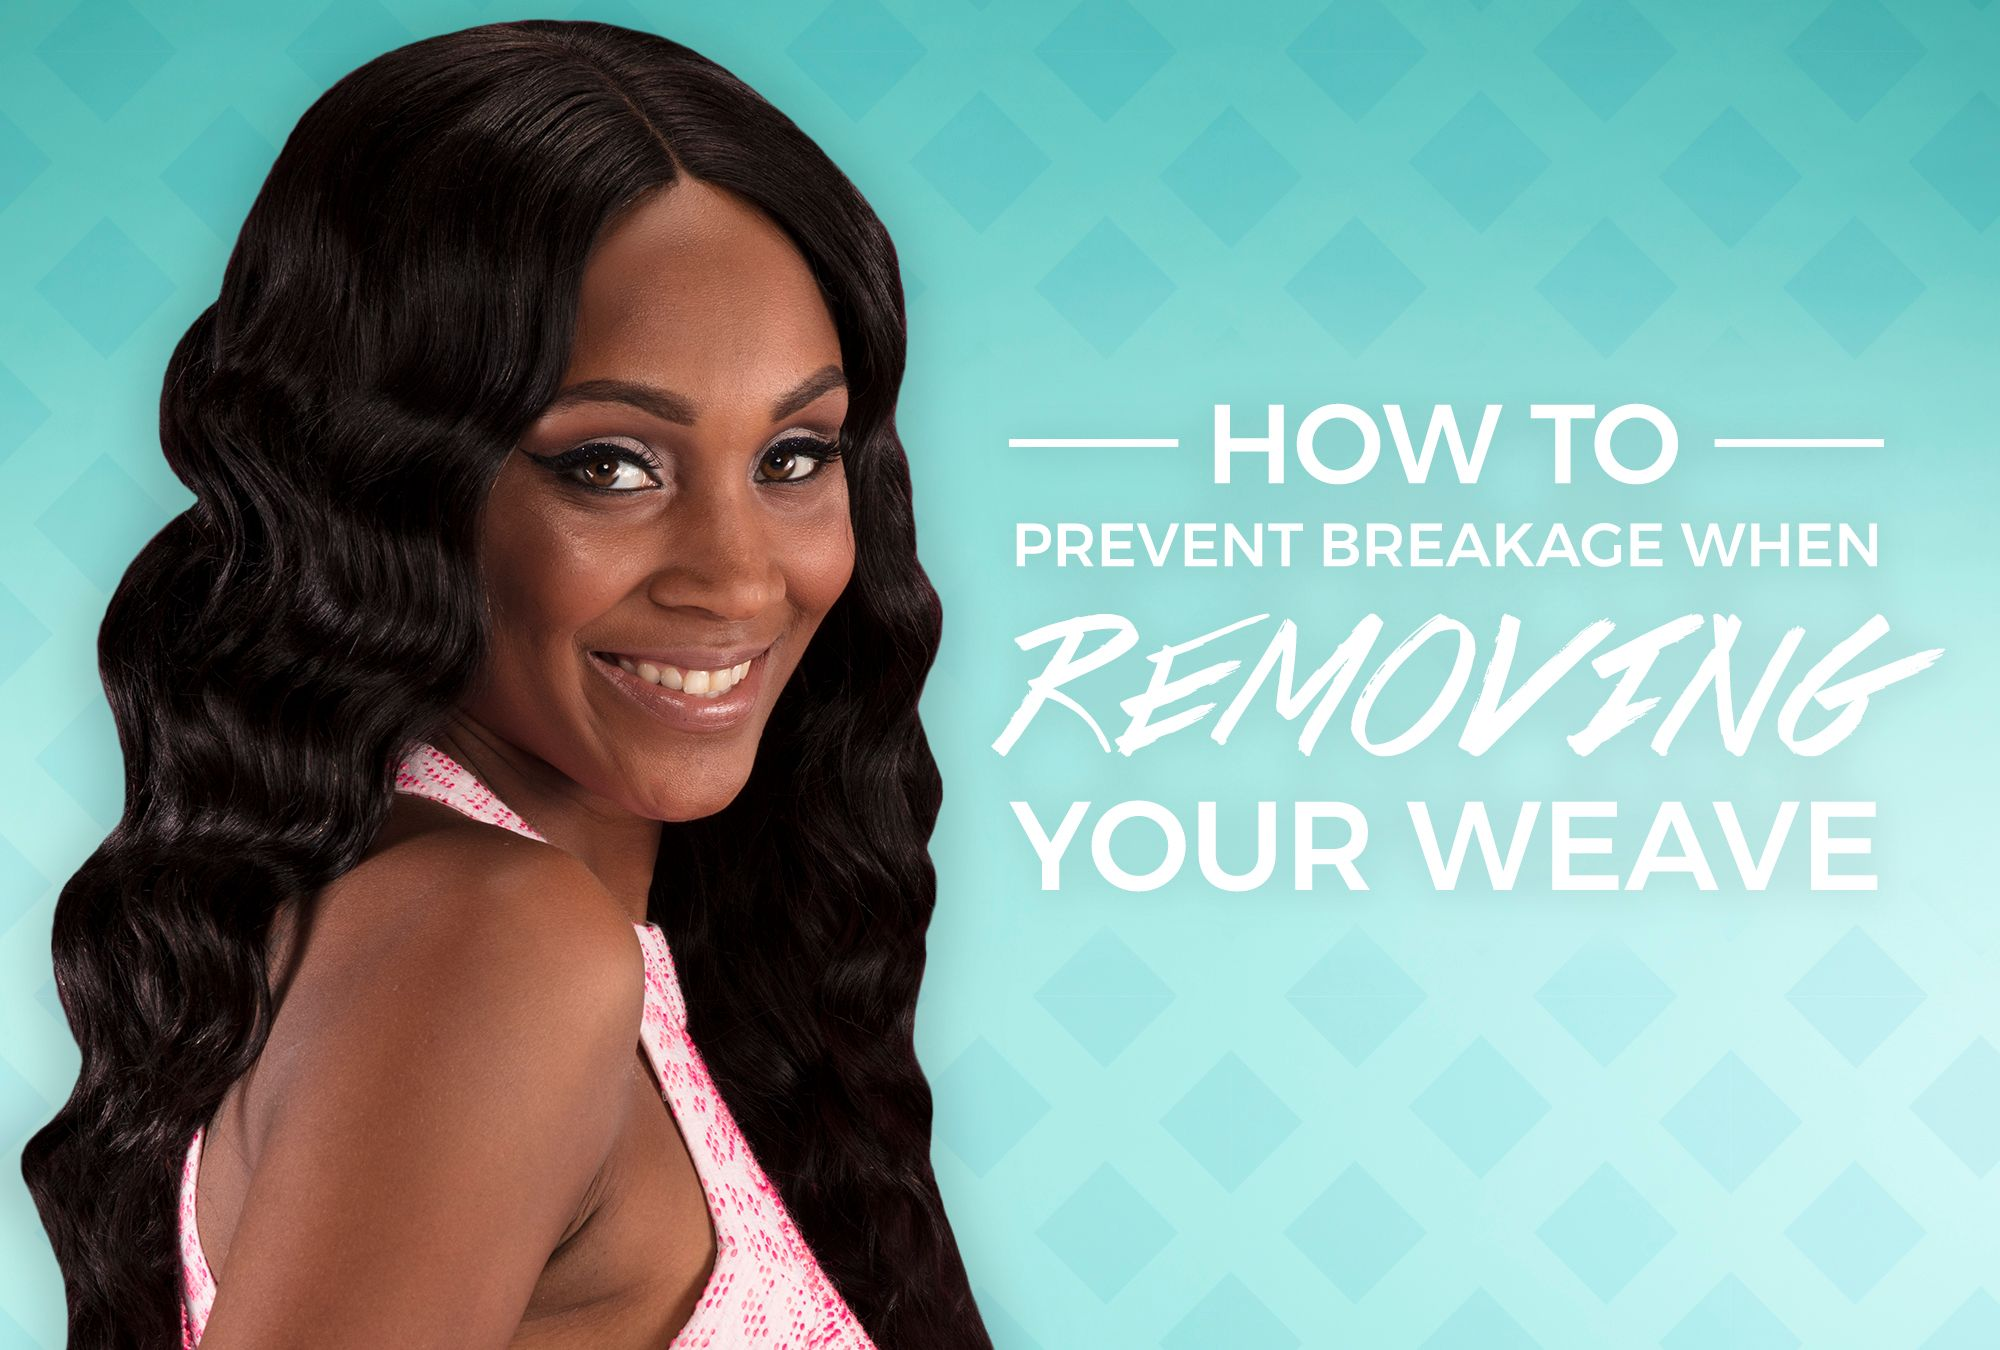 How To Prevent Breakage When Removing Your Weave